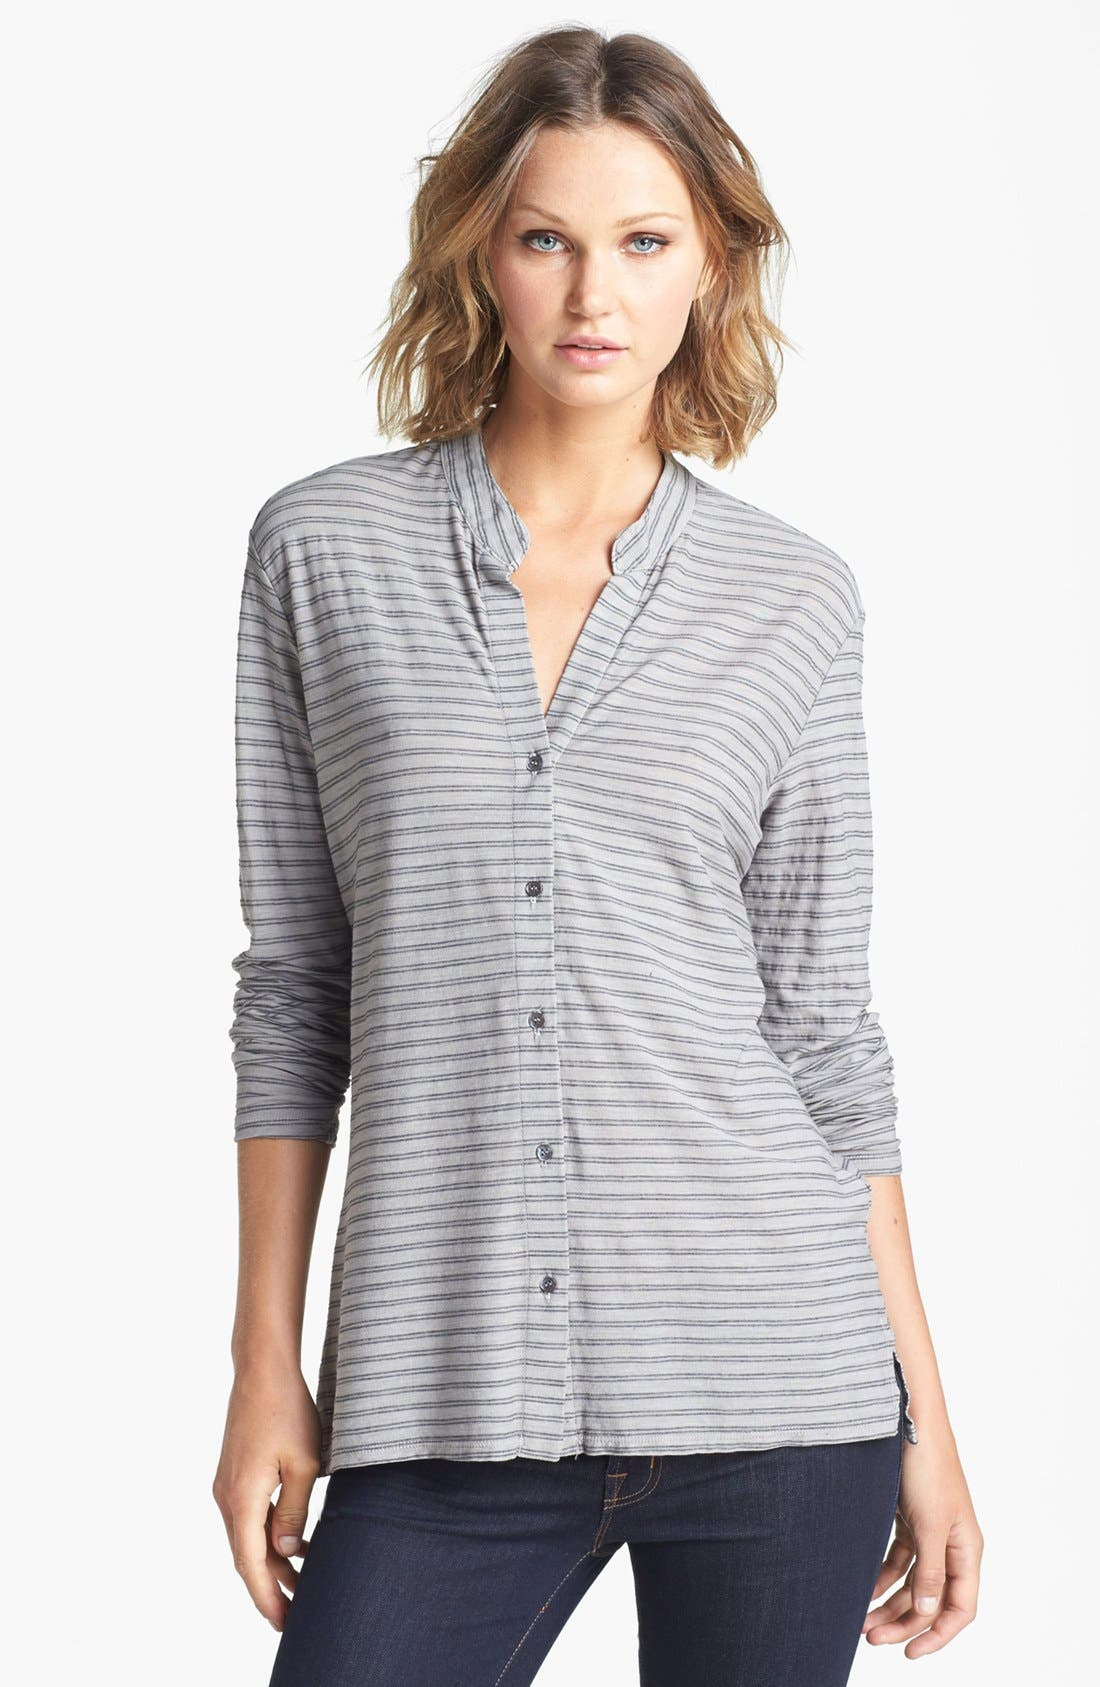 Alternate Image 1 Selected - James Perse Stripe Slub Jersey Button Up